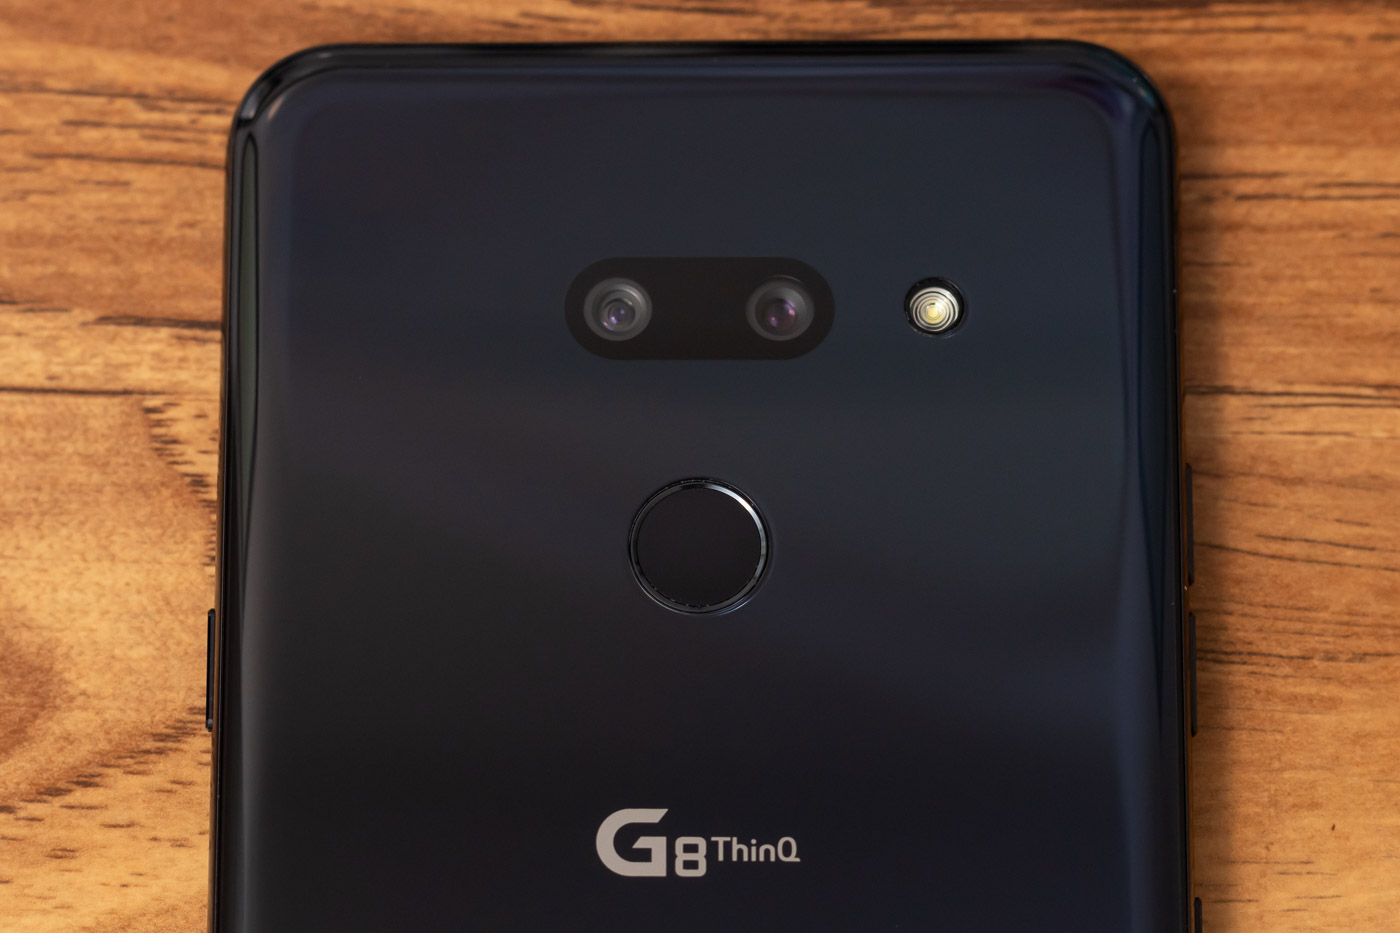 LG G8 ThinQ Review: An Affordable, Capable Flagship Smartphone